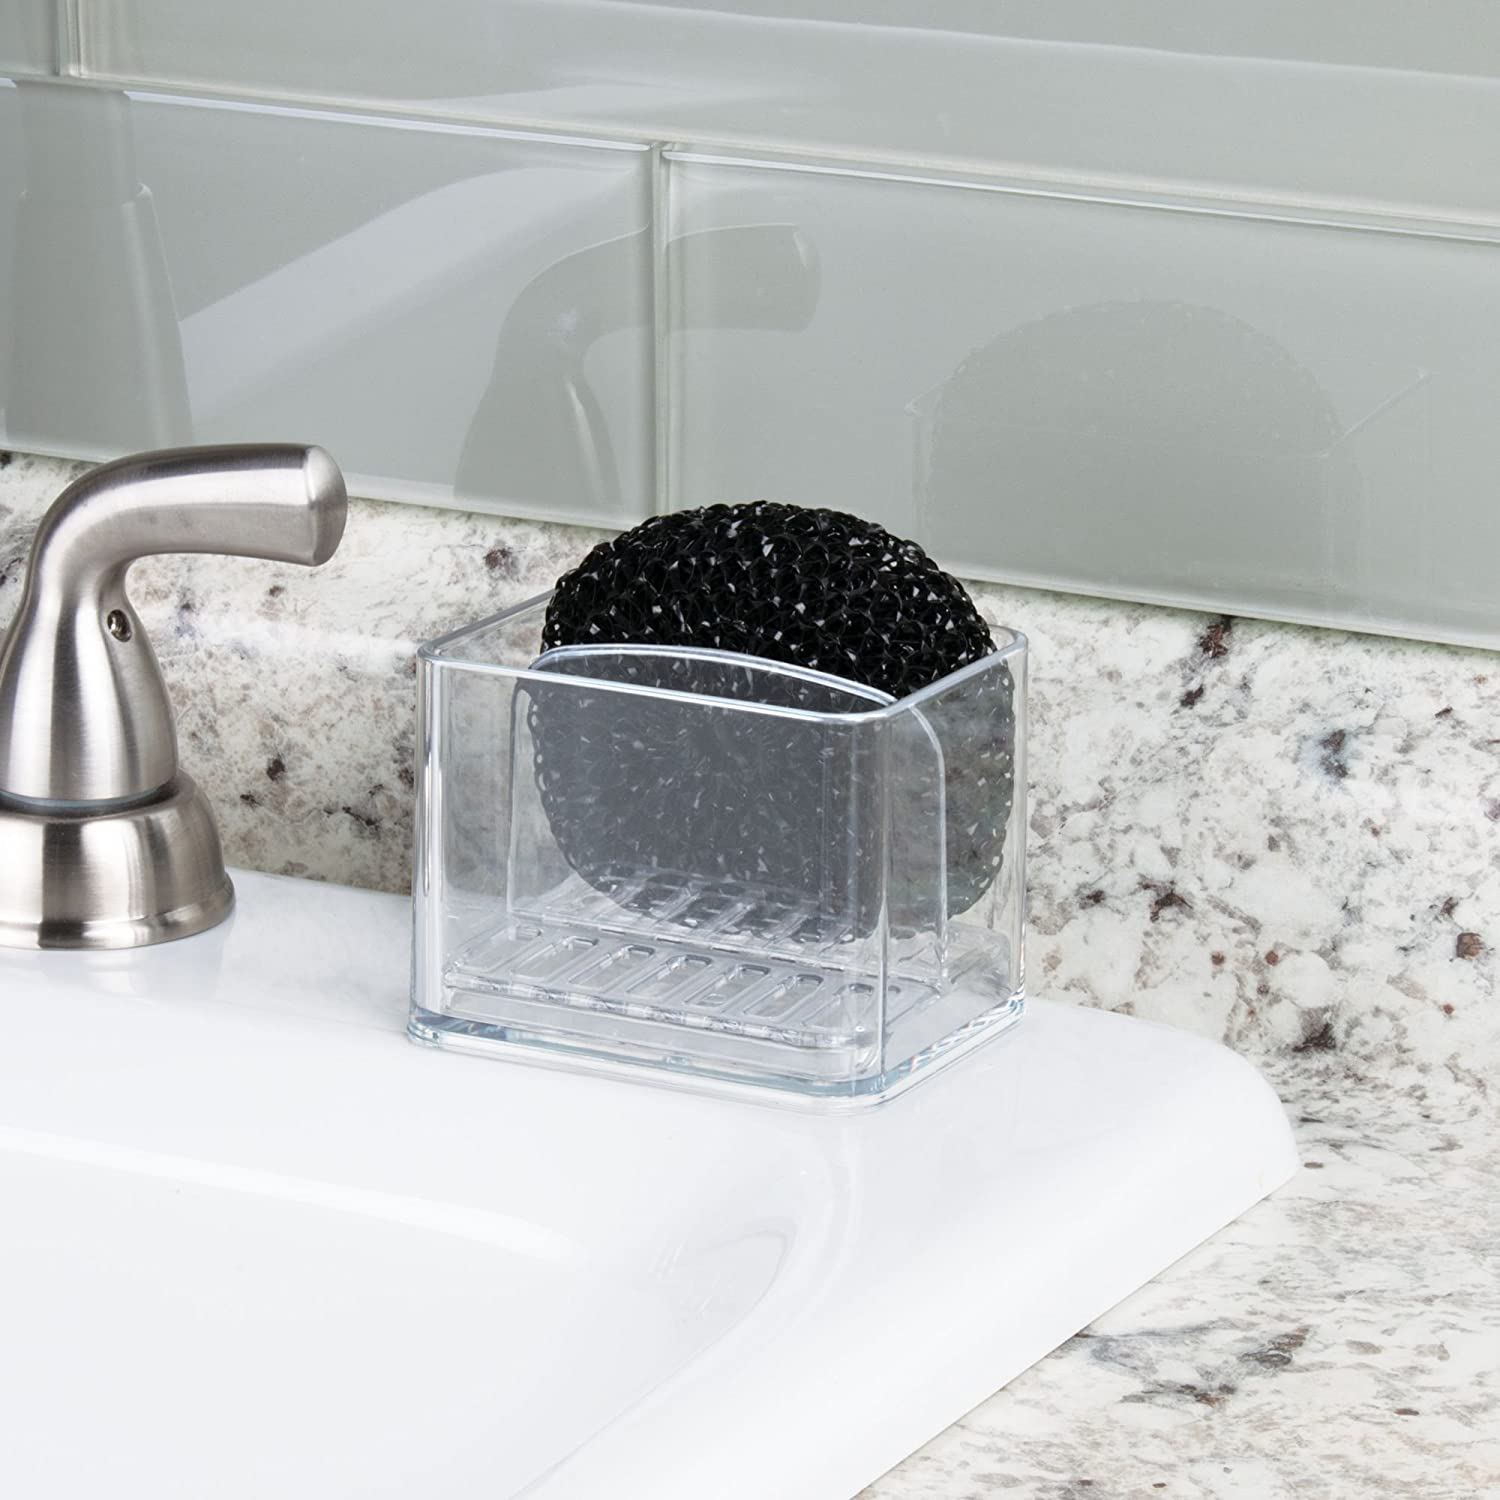 Amazon.com: mDesign Scrubber, Soap and Sponge Holder for Kitchen ...